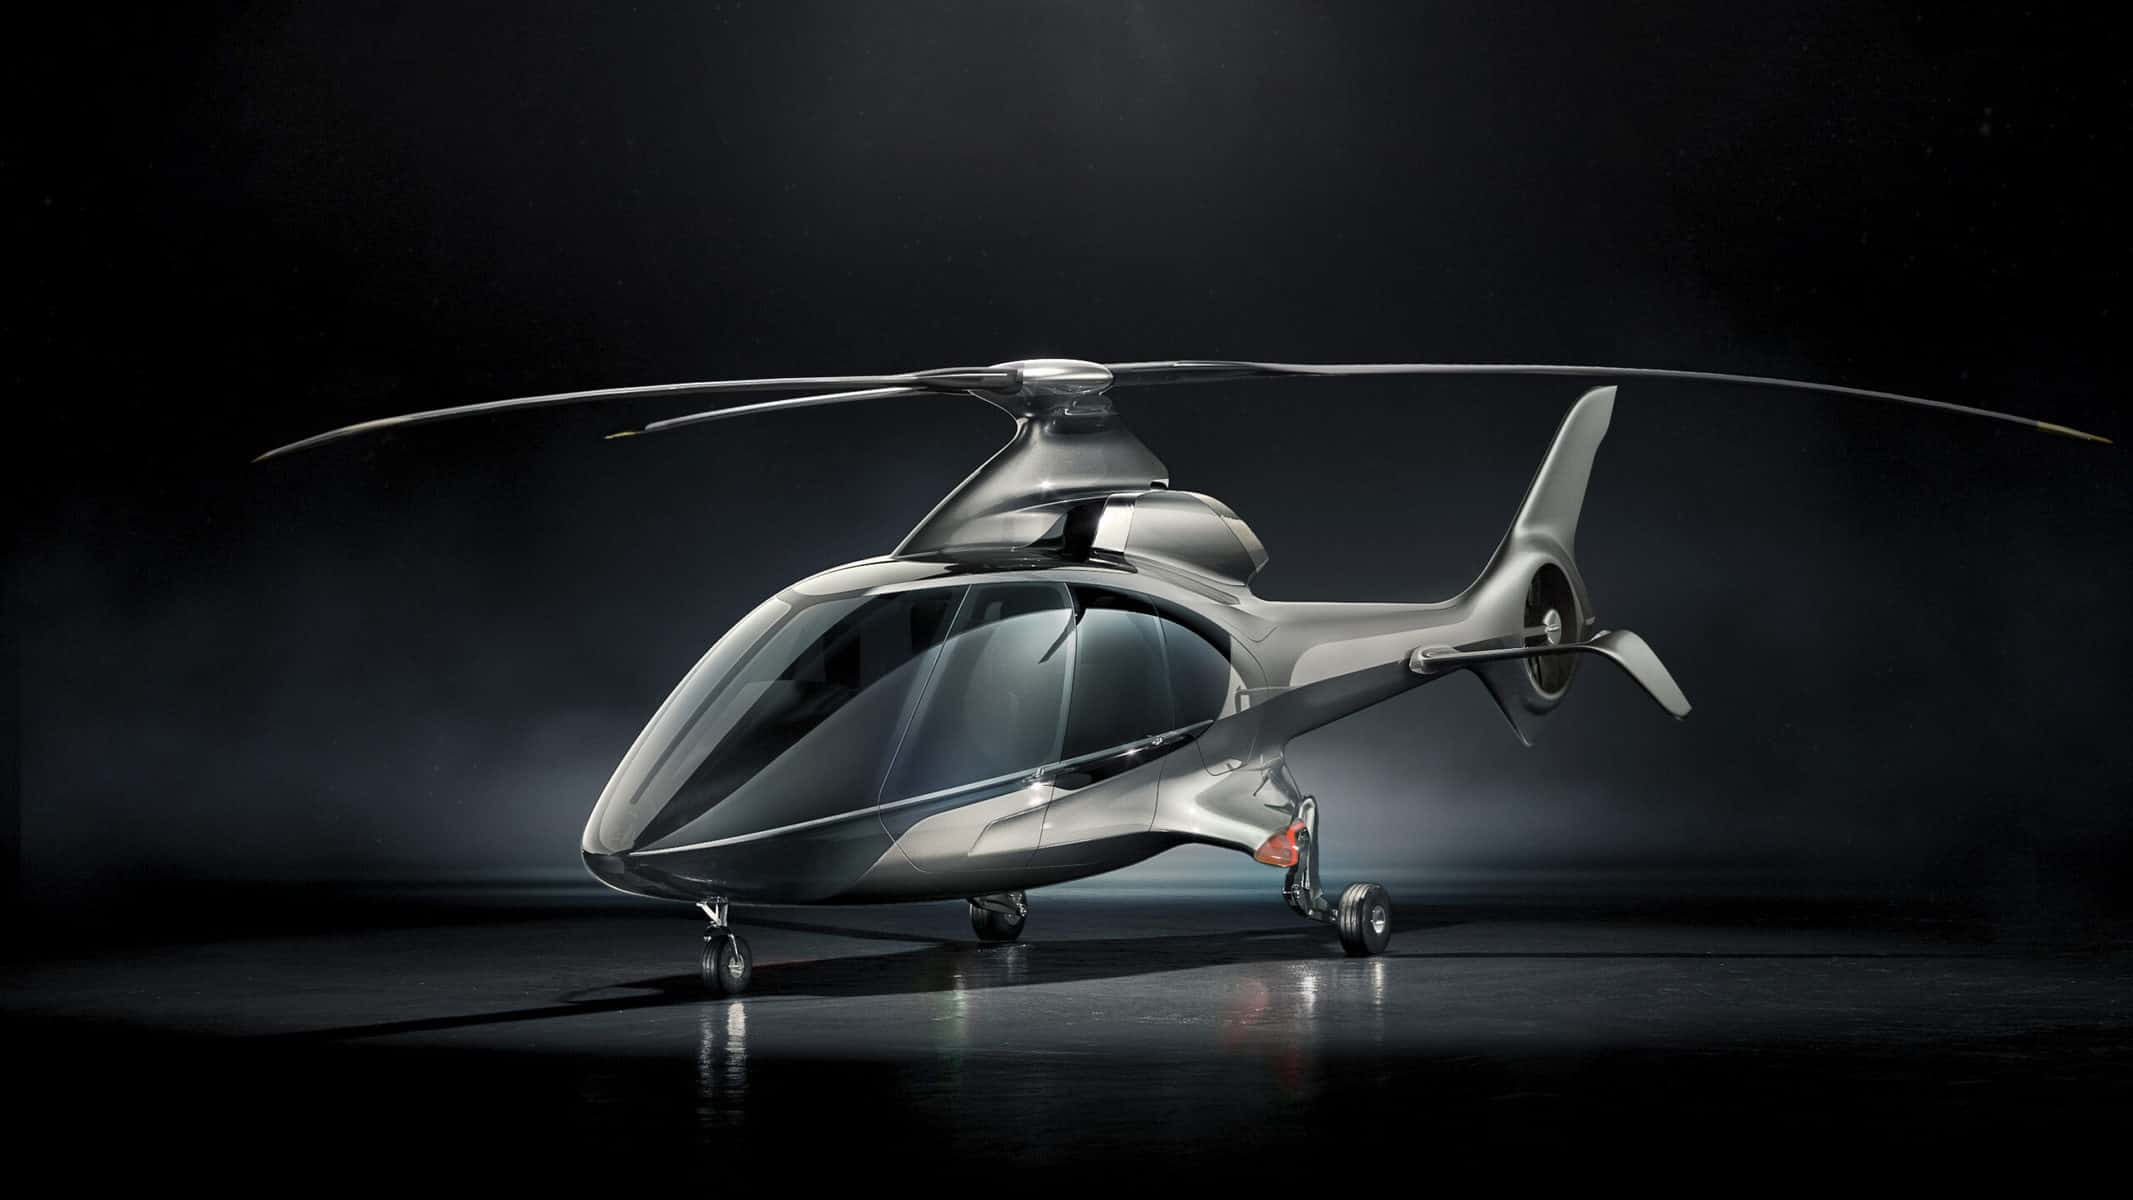 Hill Helicopters HX50 is the World's First Truly Private, Luxury Helicopter